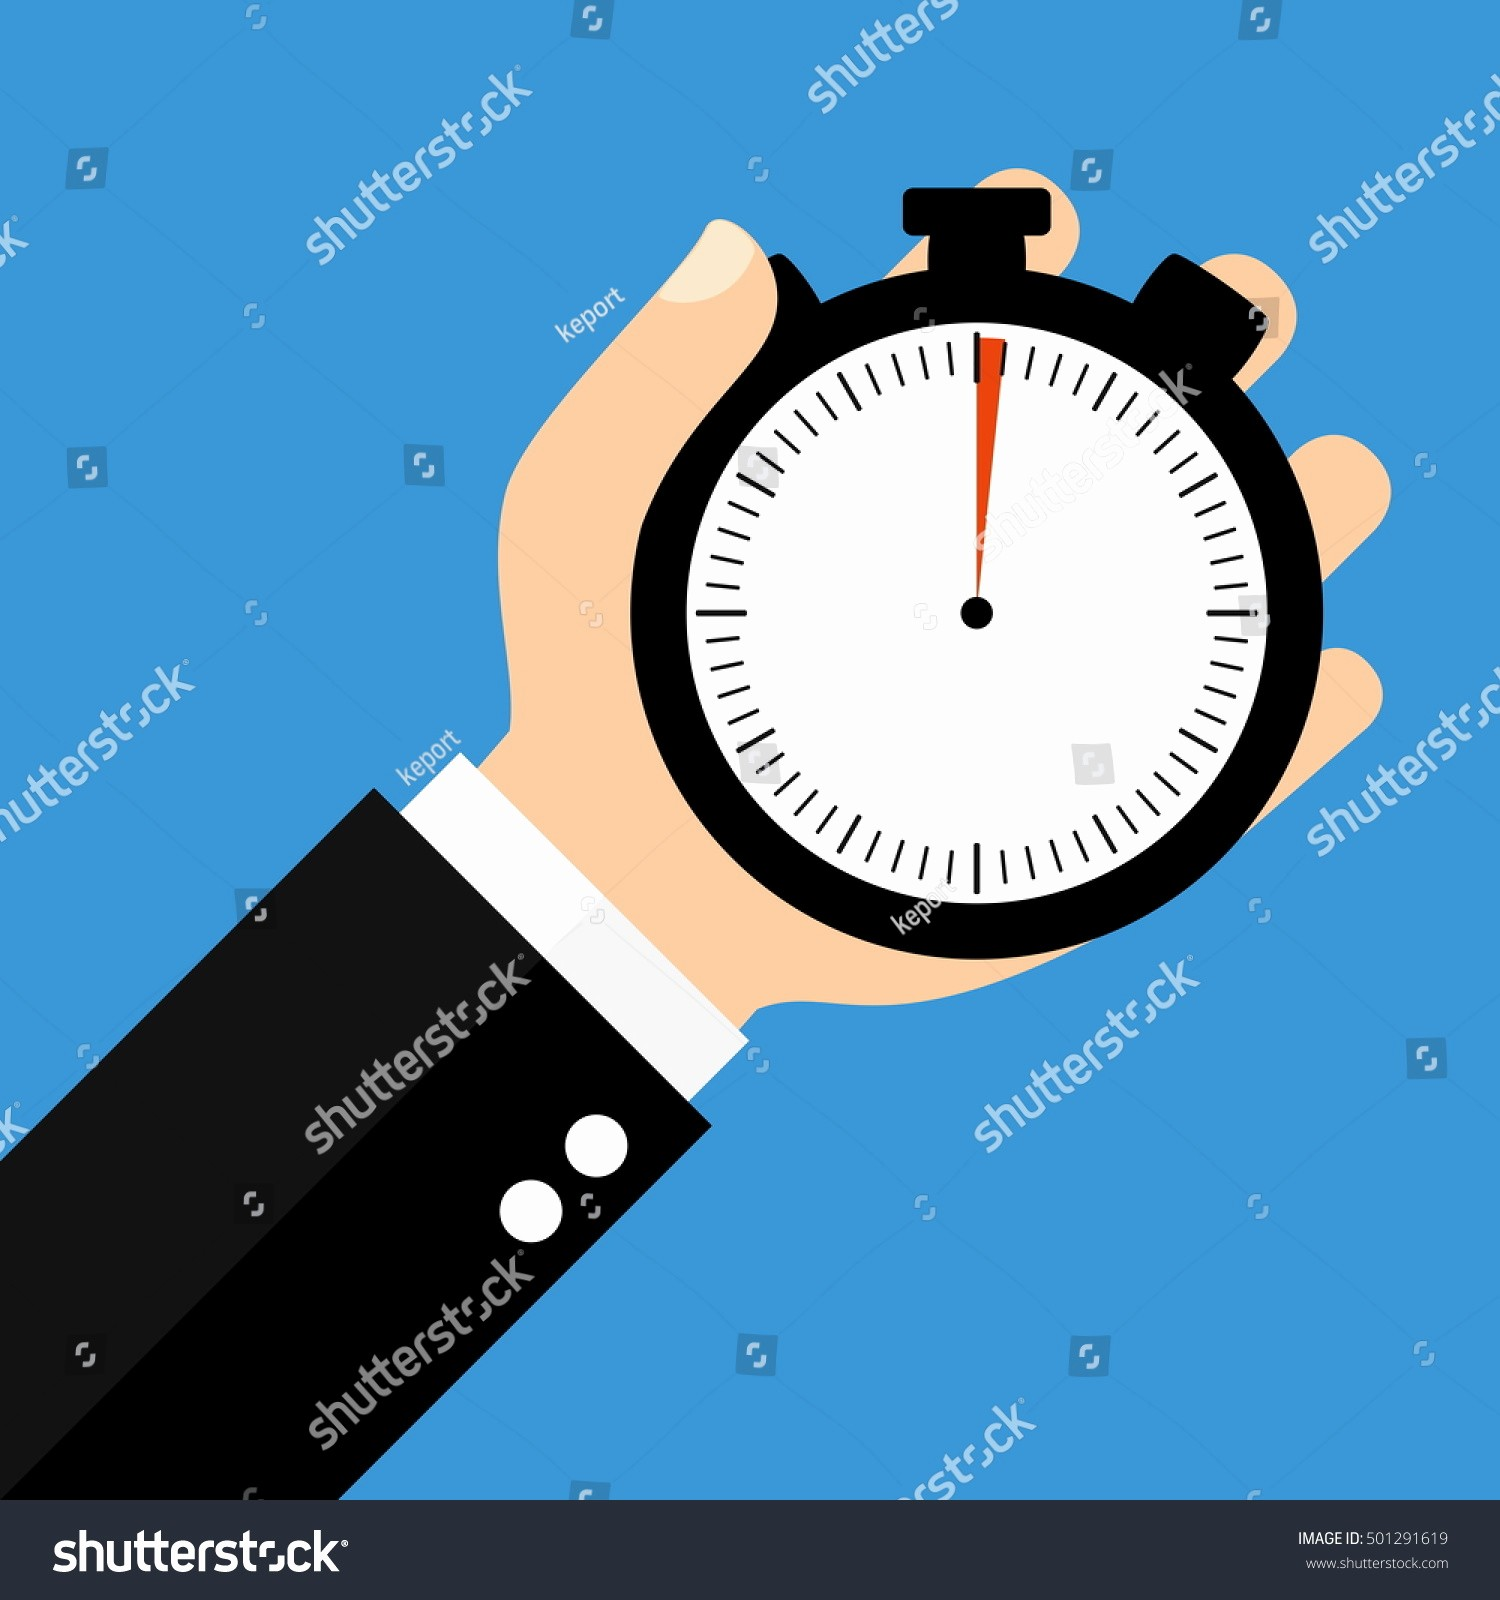 Set Stopwatch for 5 Minutes Elegant Hand Holding Stopwatch Showing 1 Second Stock Illustration